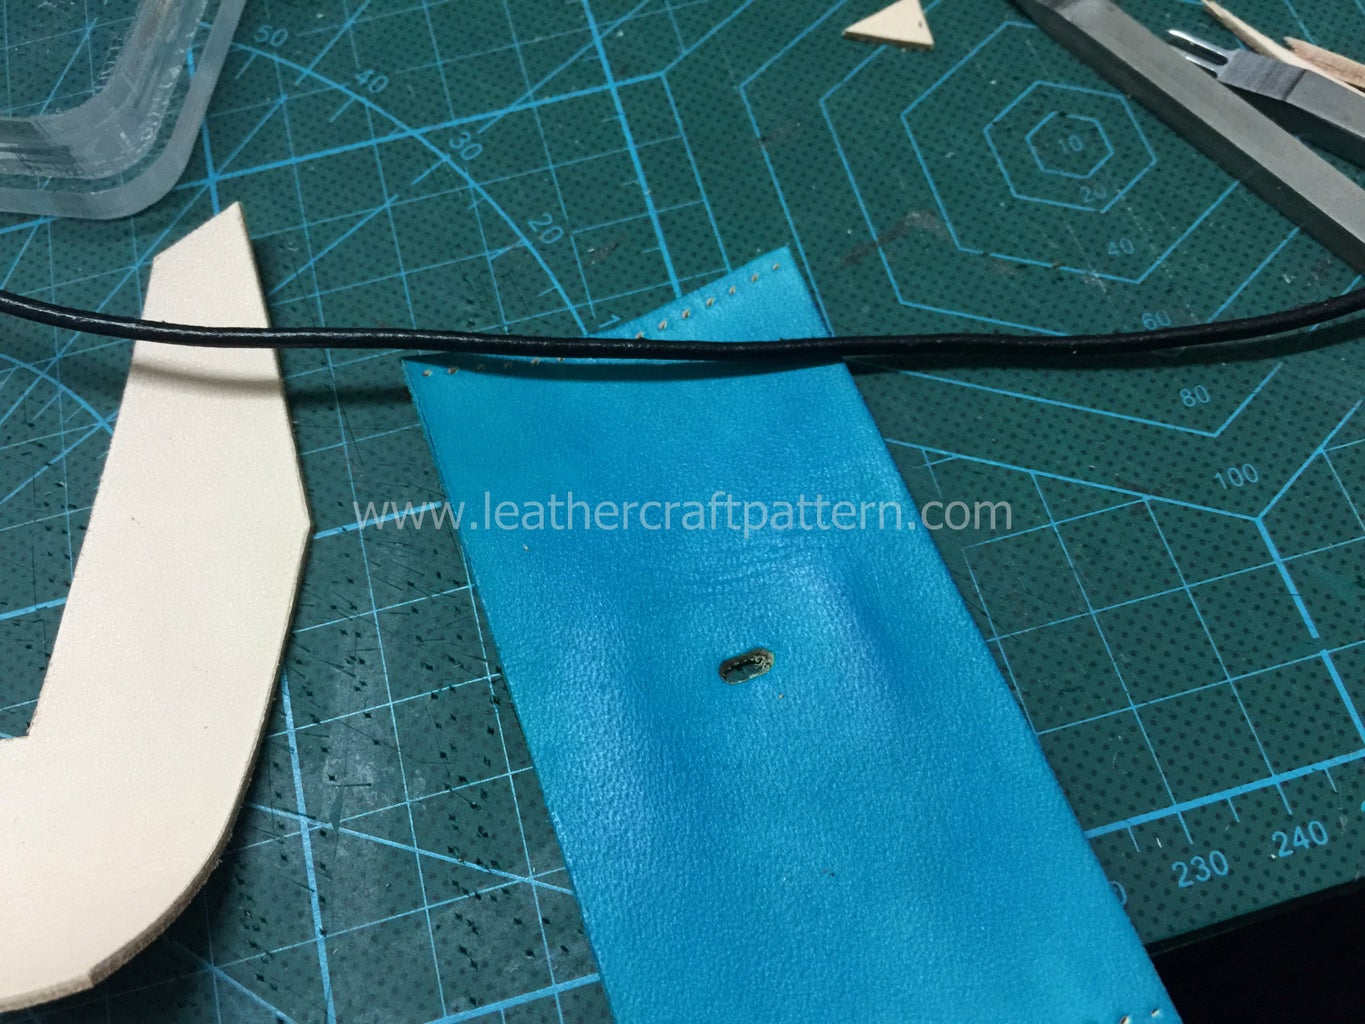 Punch an Oval Hole in the Middle of Belly Leather by Using Oval Punch